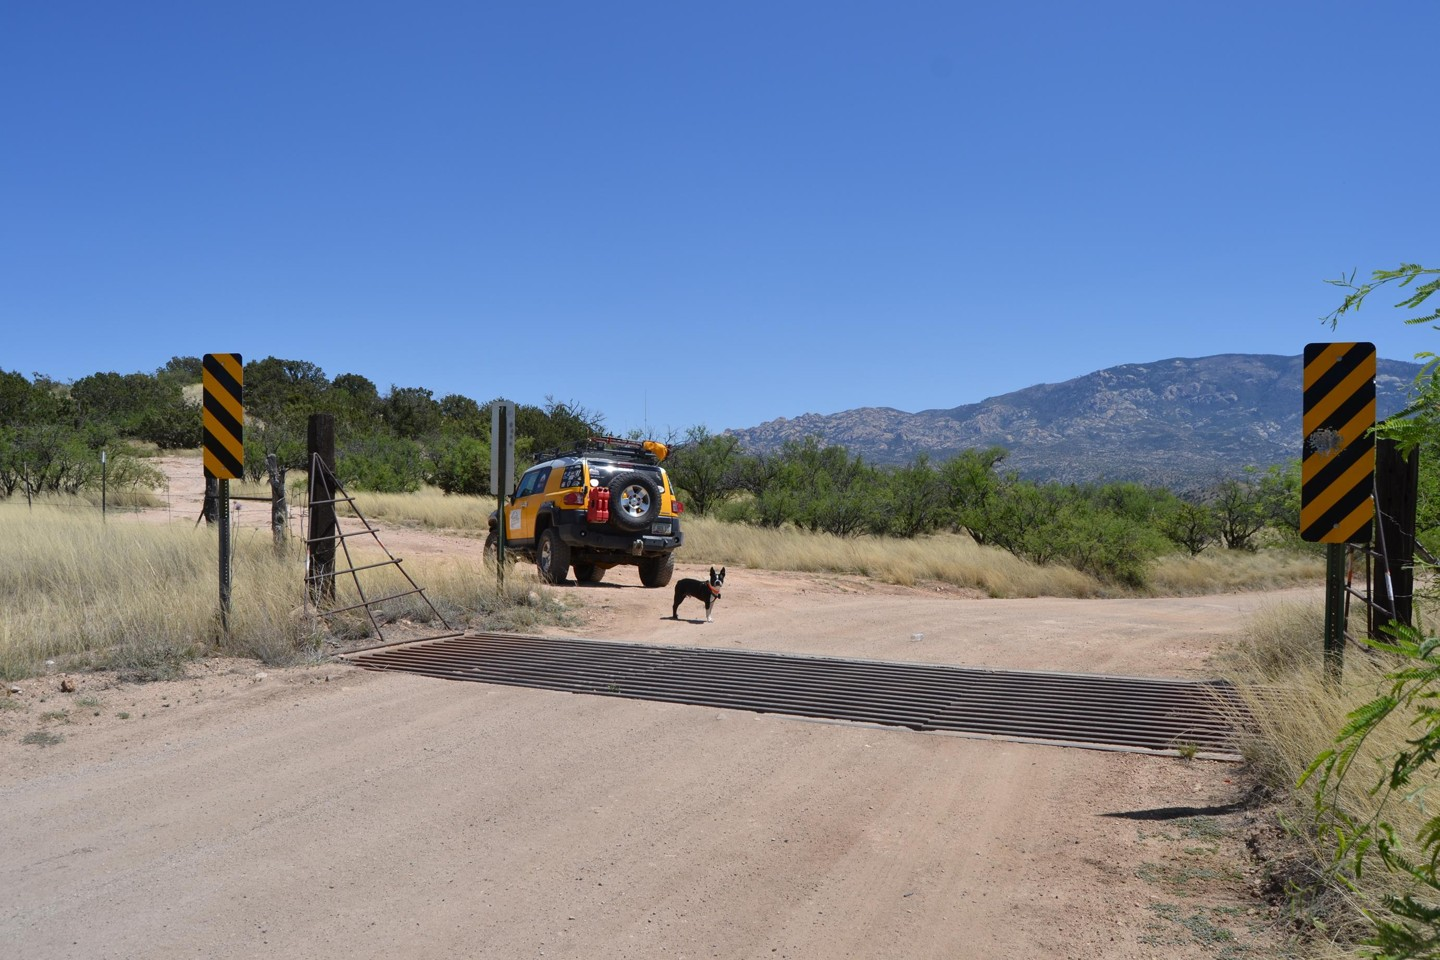 Redington Pass - Waypoint 18: Hilltop Campsite #2 Turn Off/Cattle Guard (Stay Right)